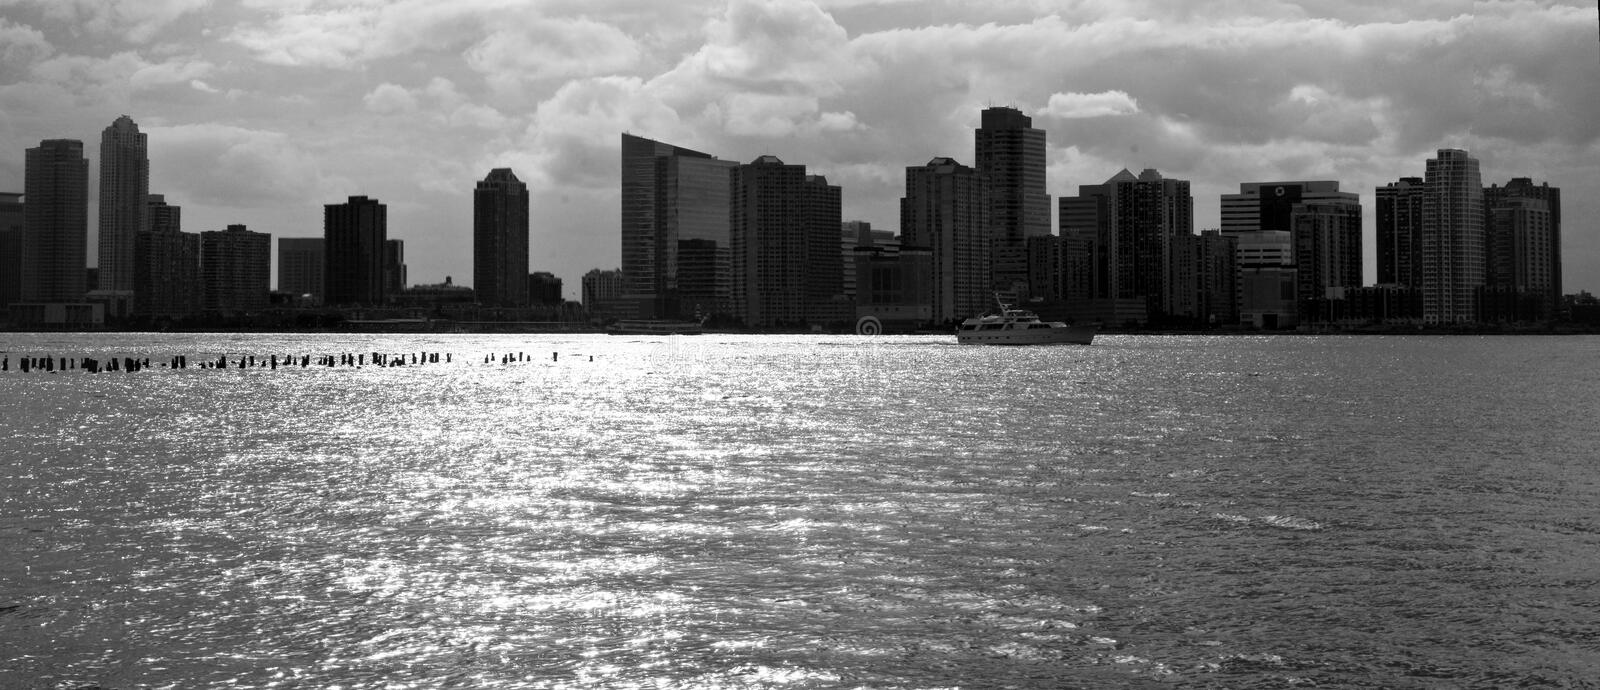 Download New York City Skyline In Black And White Stock Image - Image: 32875167